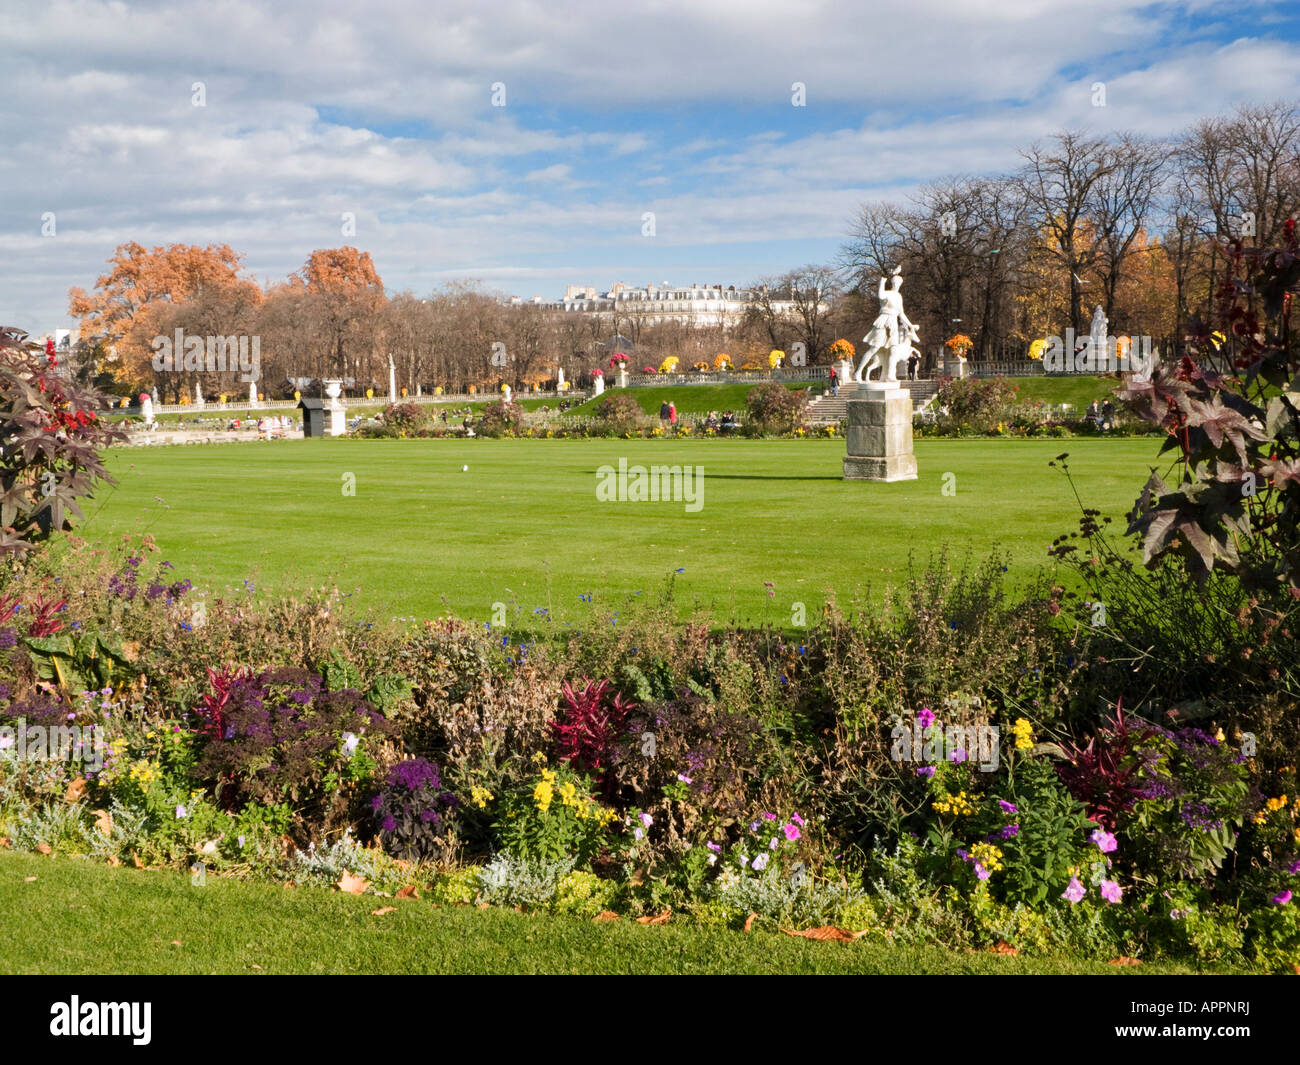 Jardin du Luxembourg Paris France Europe - Stock Image